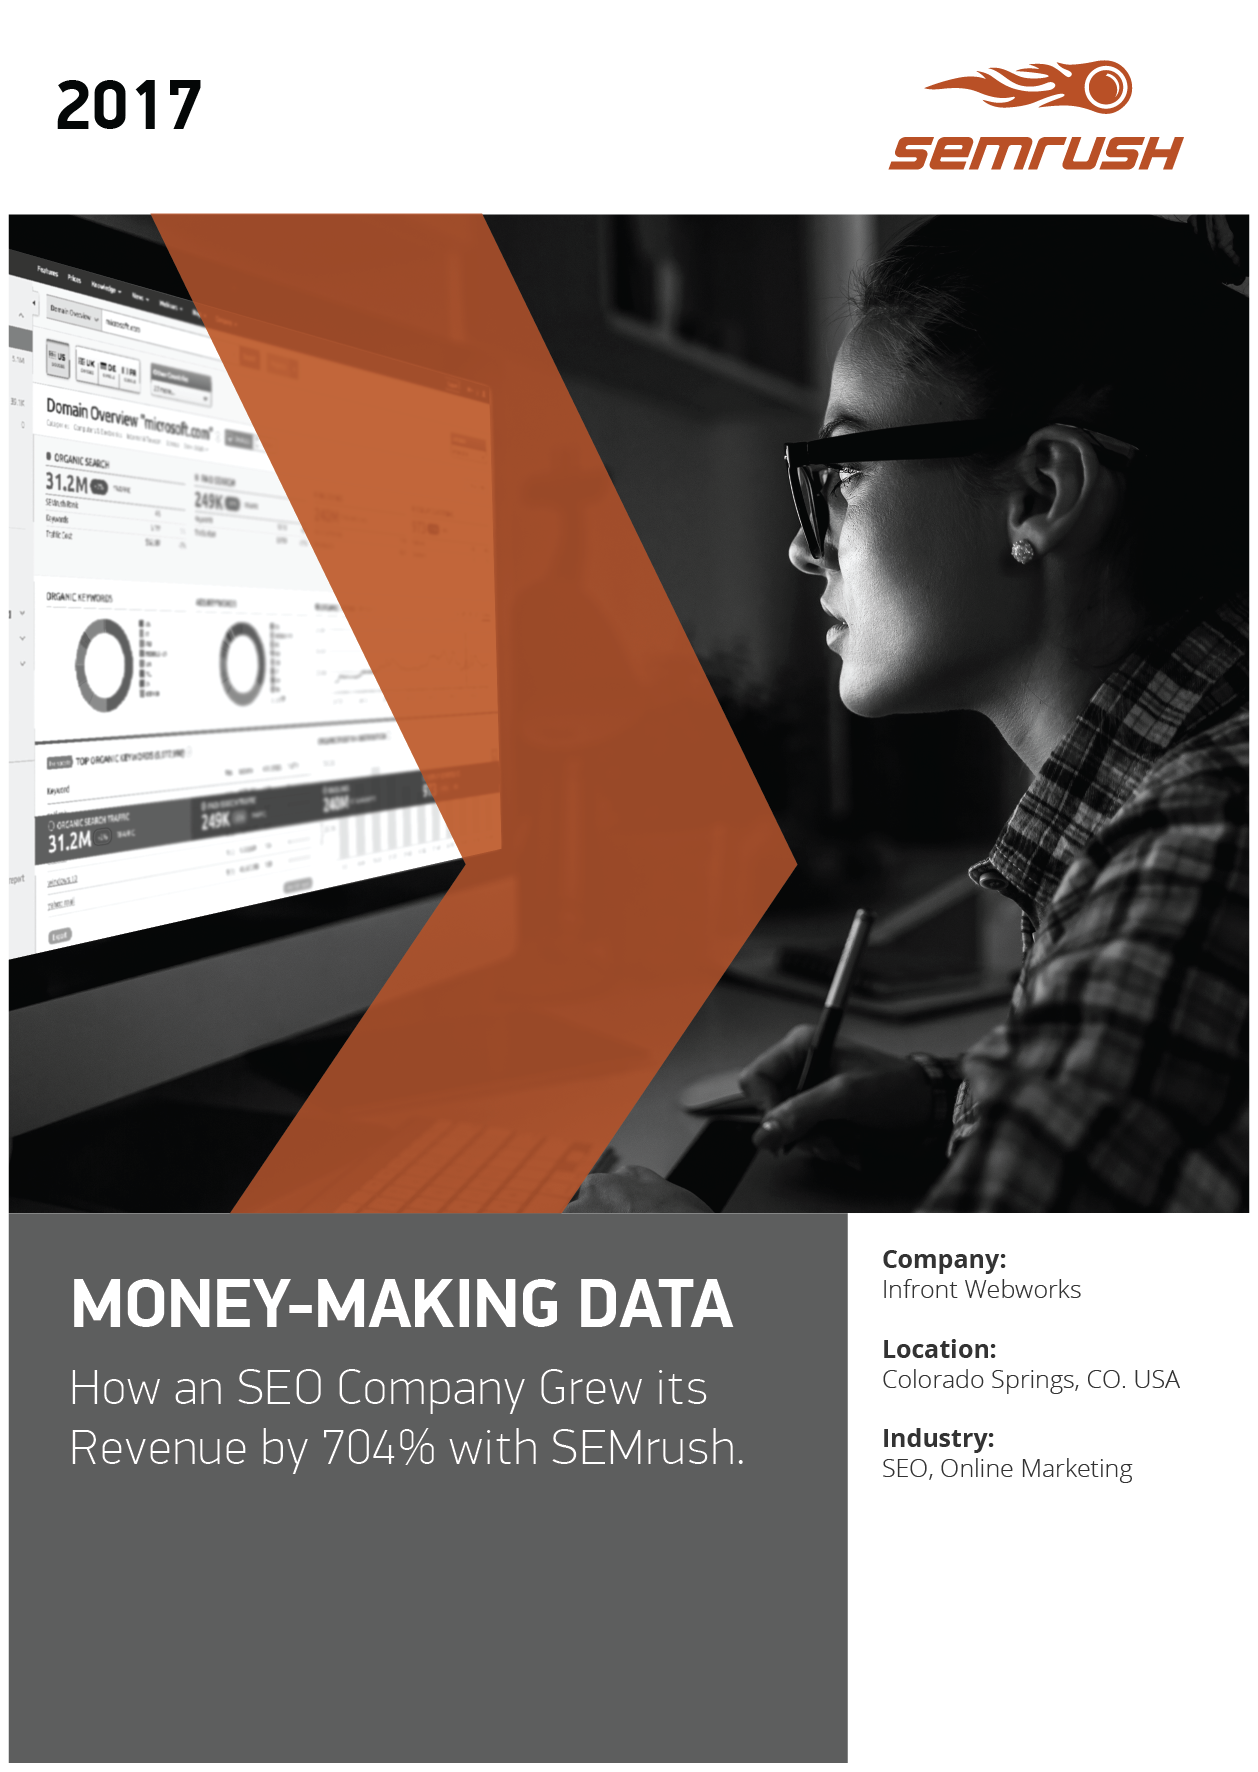 Case Study: How an SEO Company Grew Revenue by 704% with SEMrush. Image 0